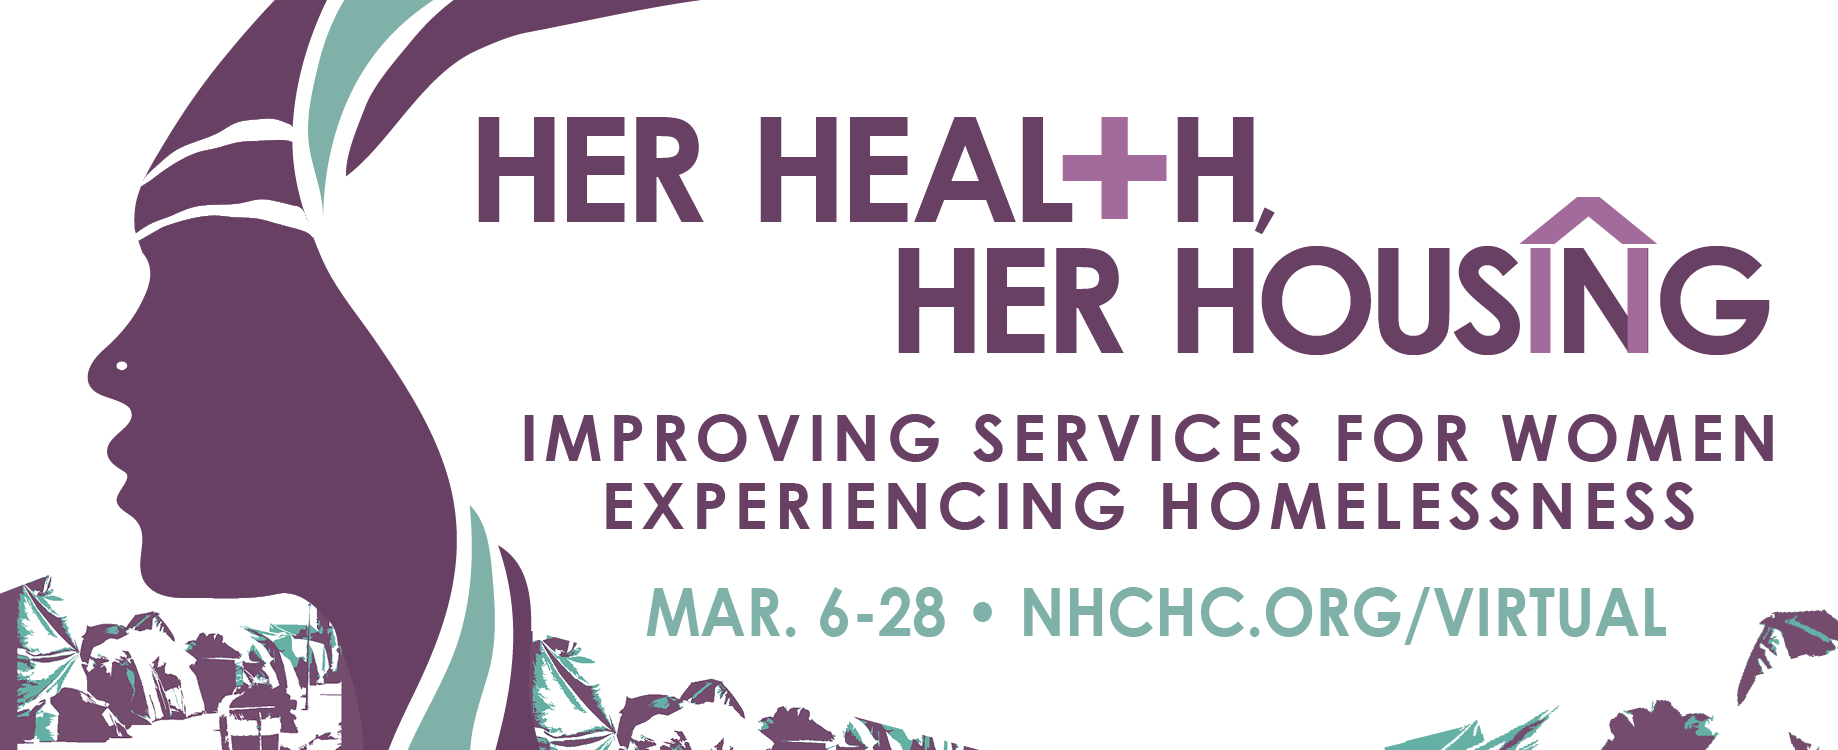 Her Health, Her Housing